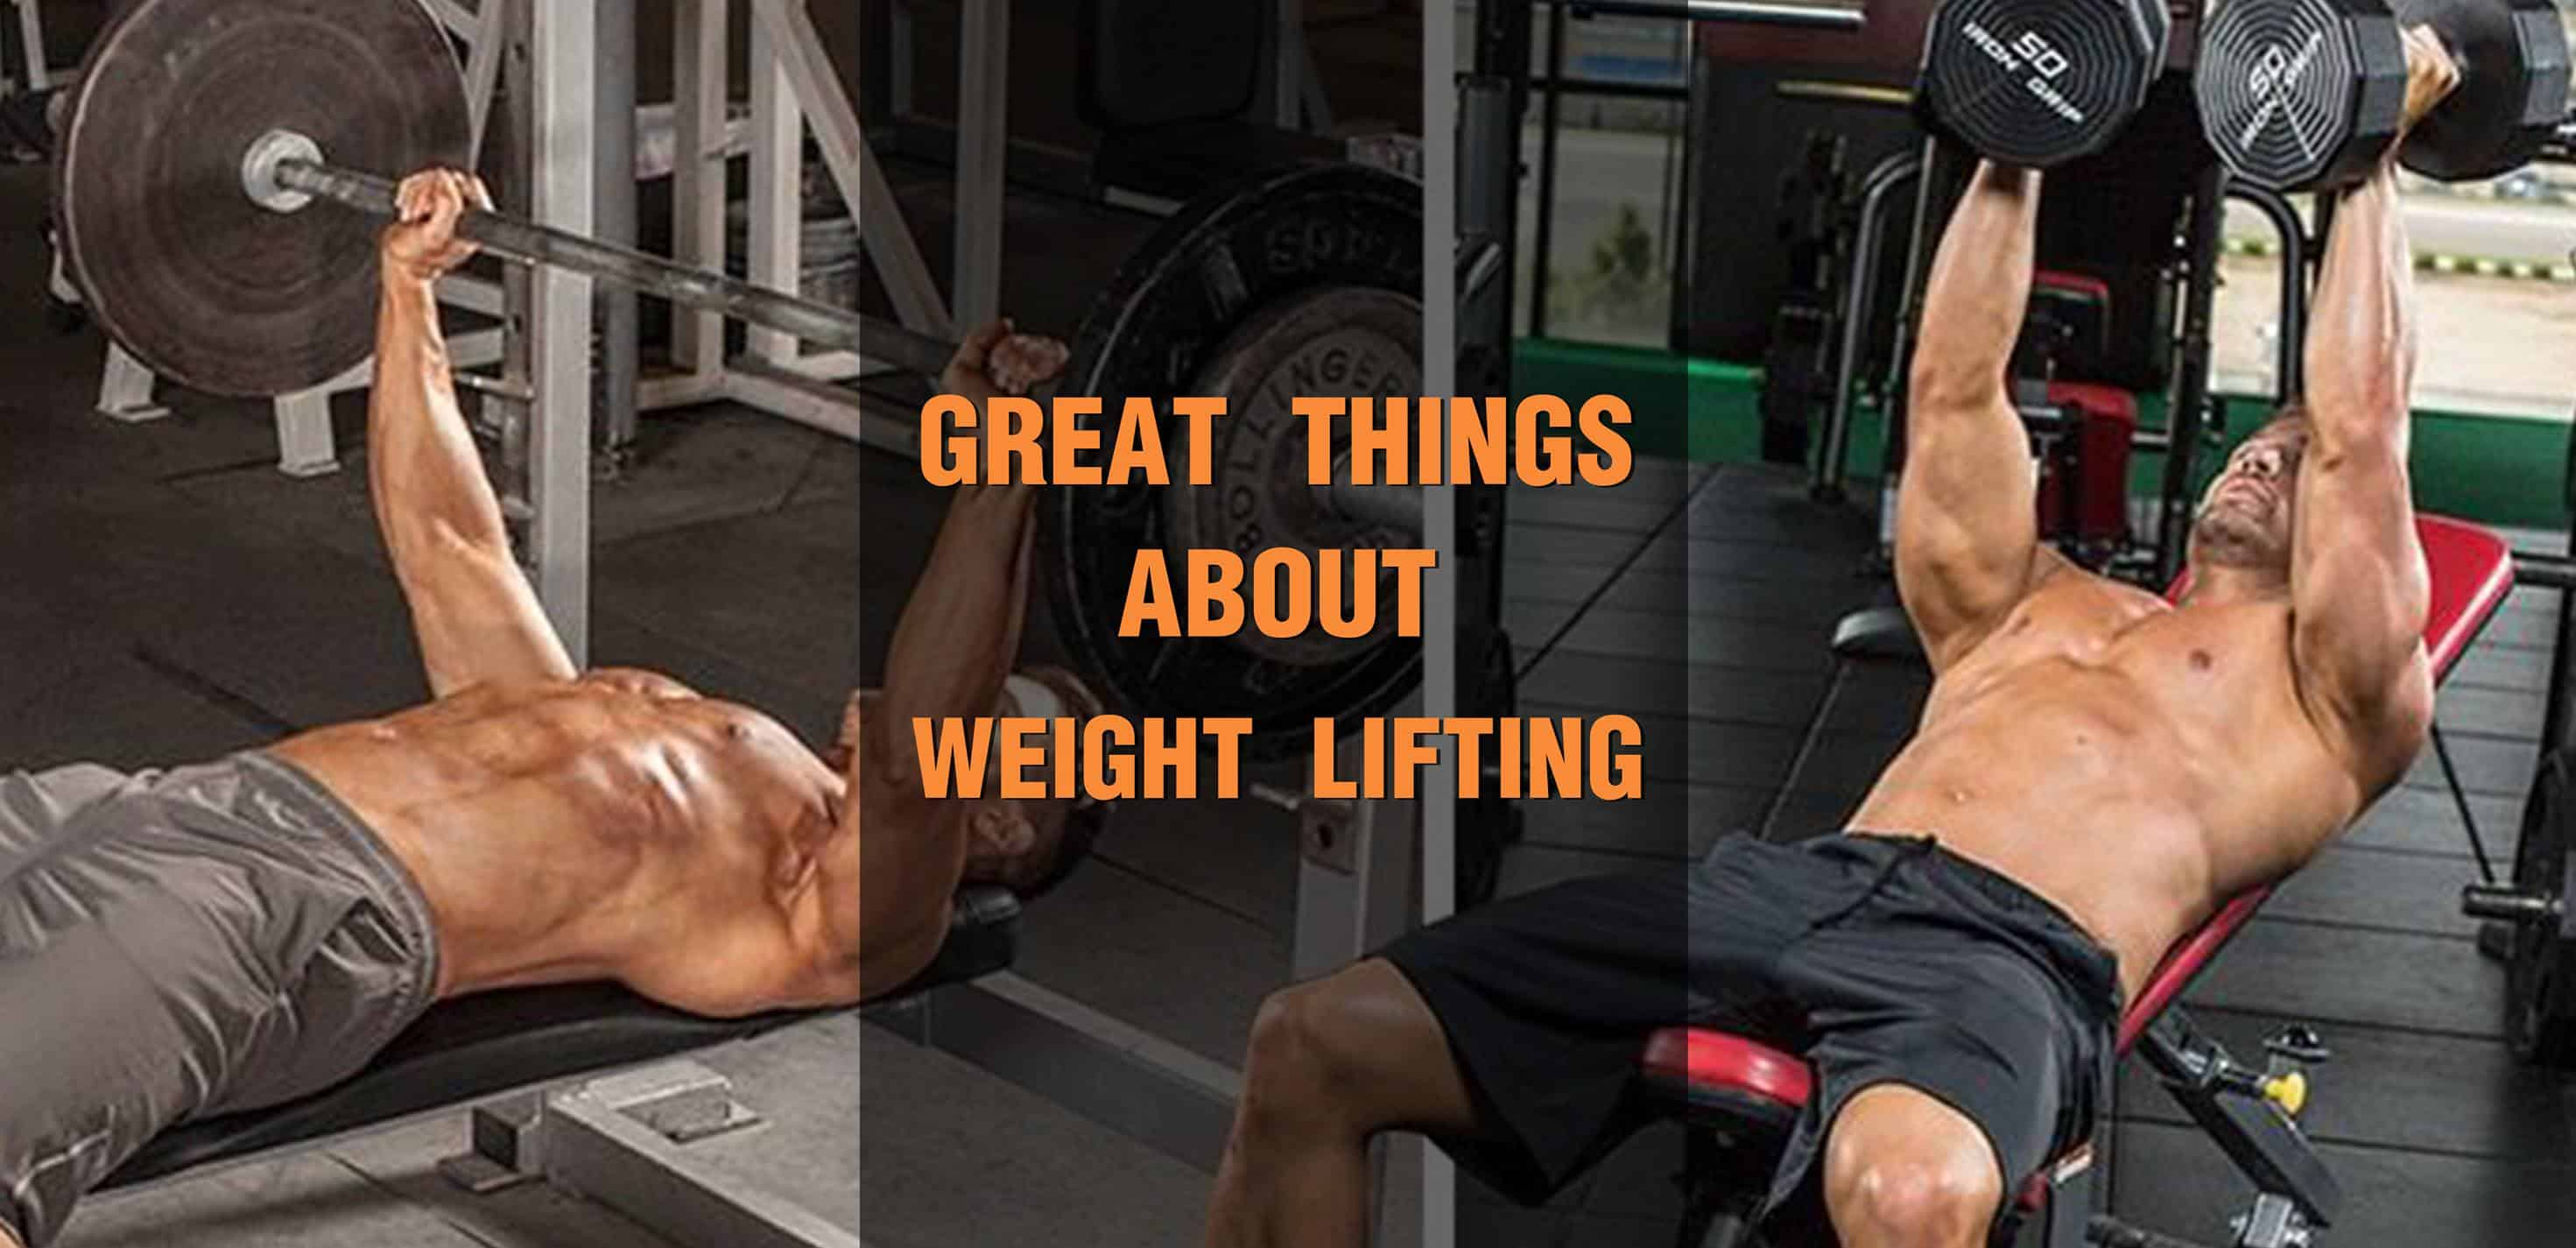 Great-Things-About-Weight-Lifting